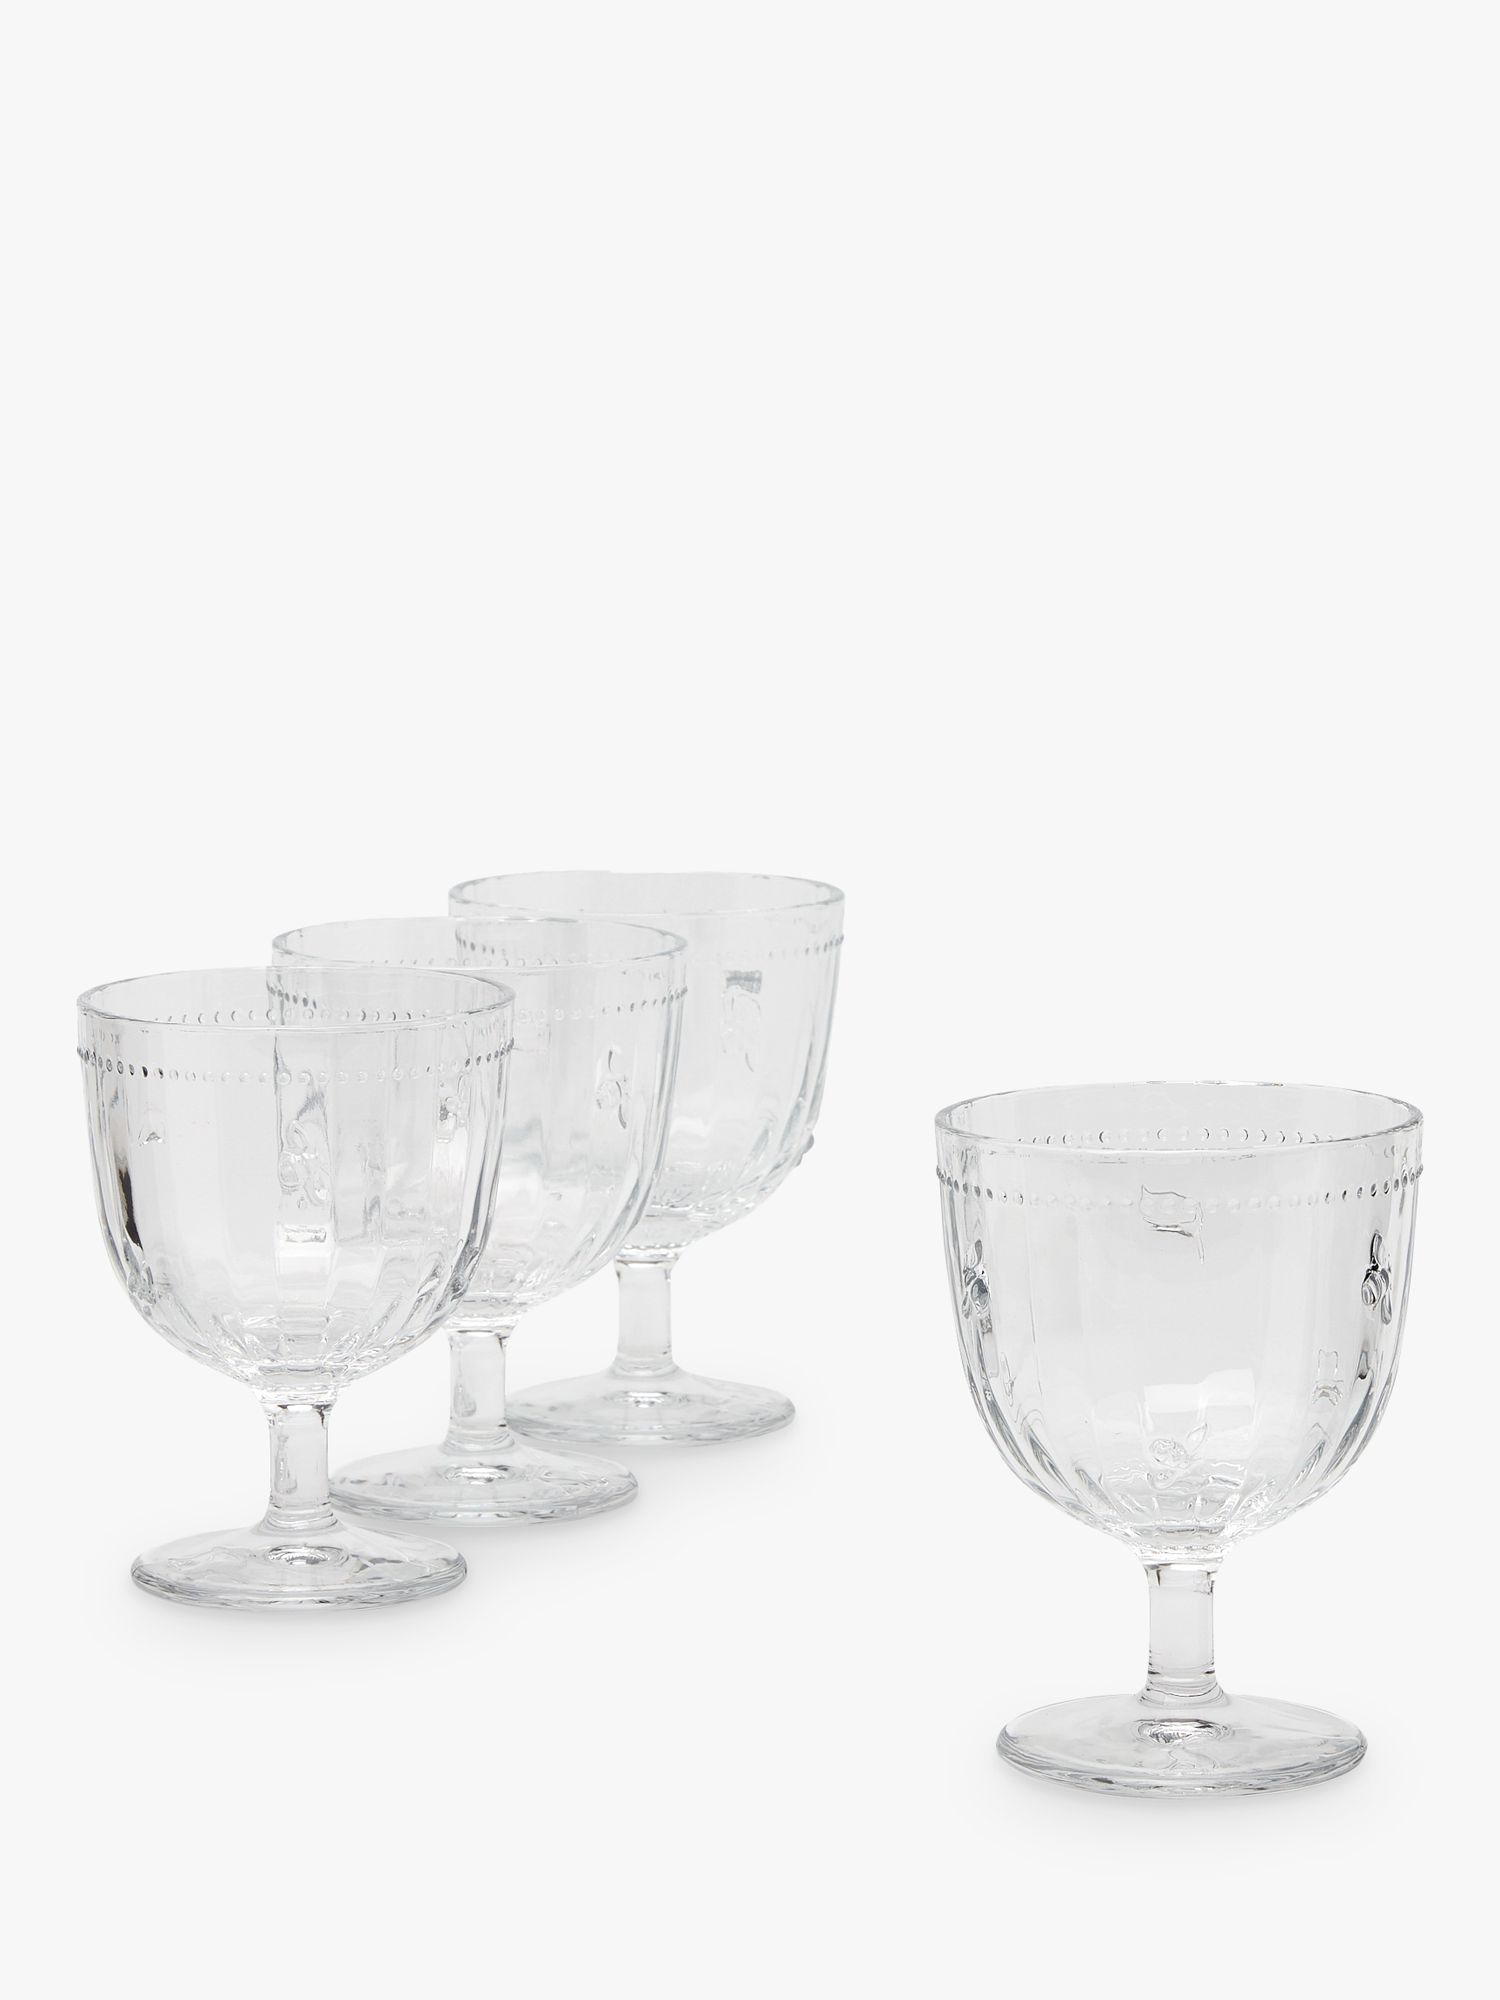 Joules Bee Gin Glasses, Set of 4, 350ml, Clear